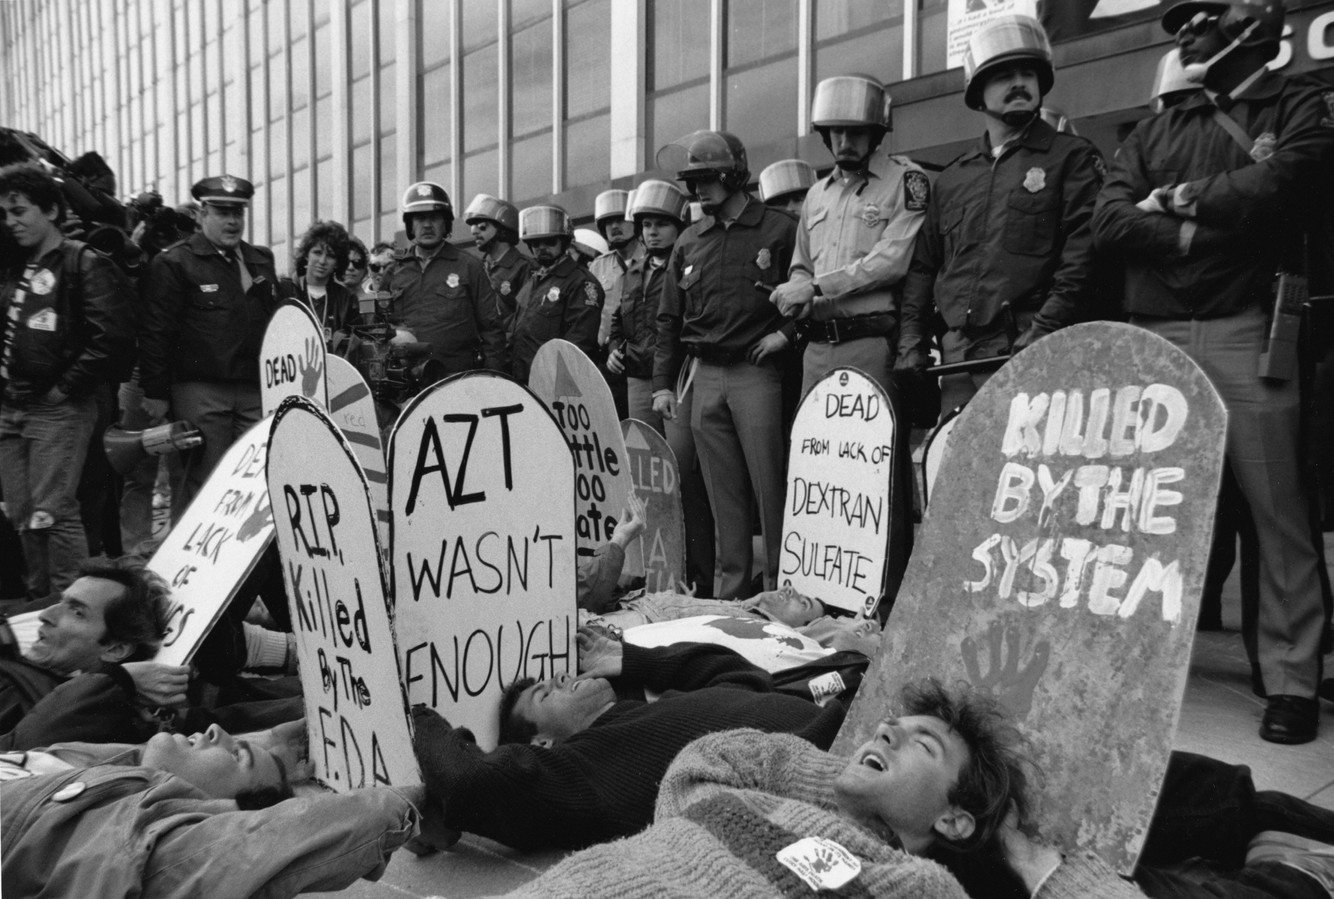 BLOCKADING THE ENTRANCE TO THE FOOD A DRUG ADMINISTRATION (FDA), ROCKVILLE, MD, 1988